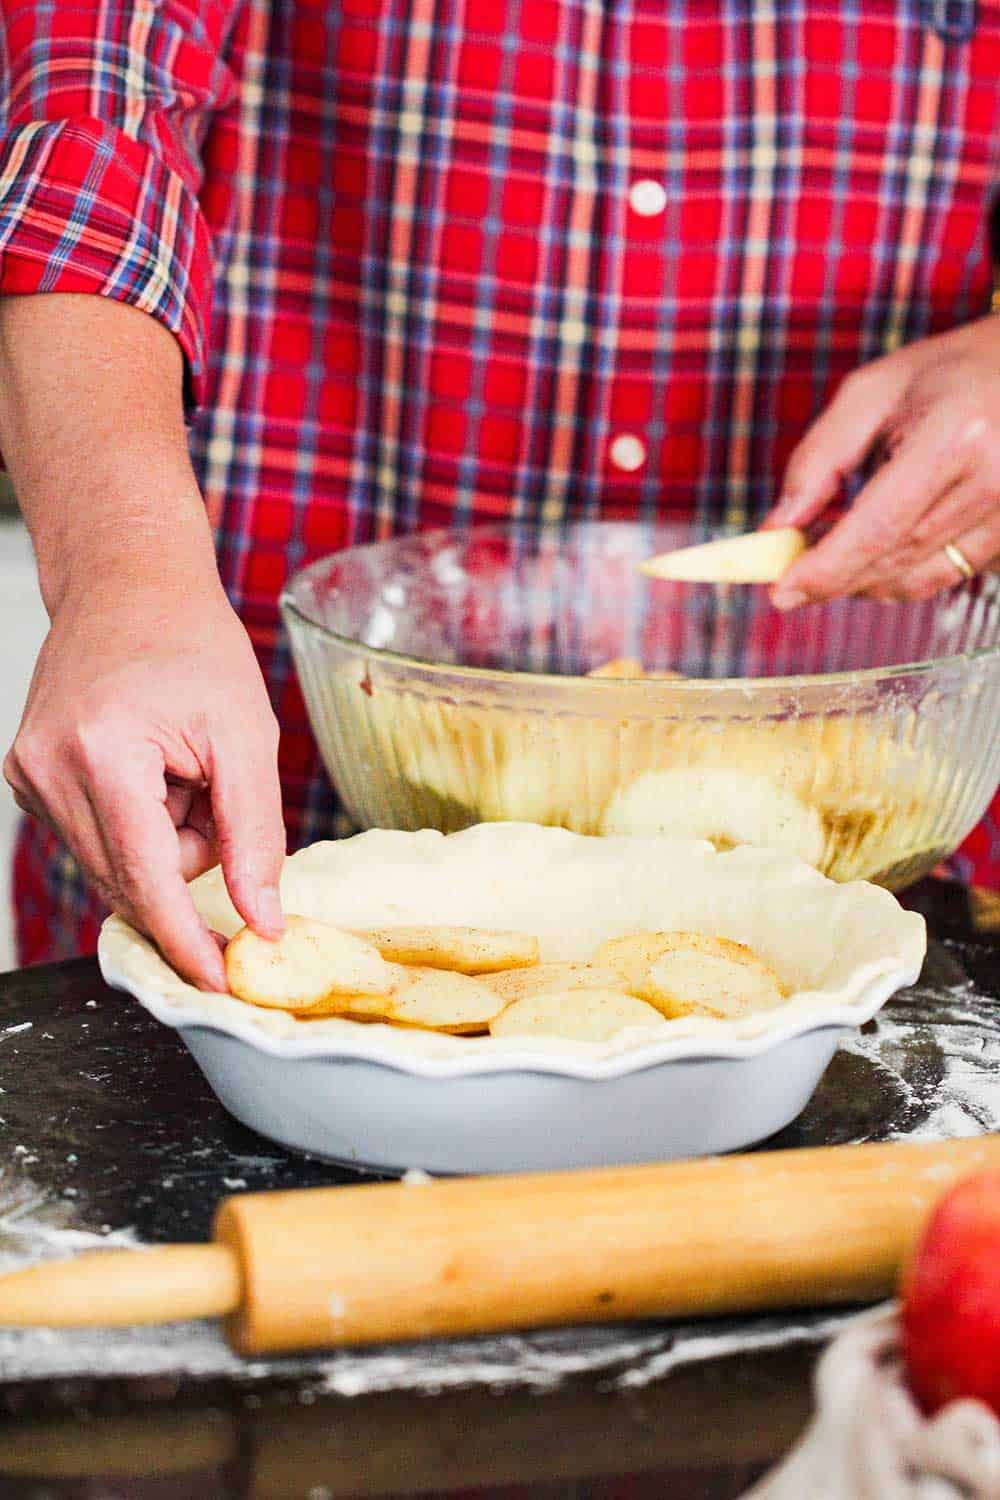 A hand layering spiced apple slices into a pie dish lined with homemade pie dough.